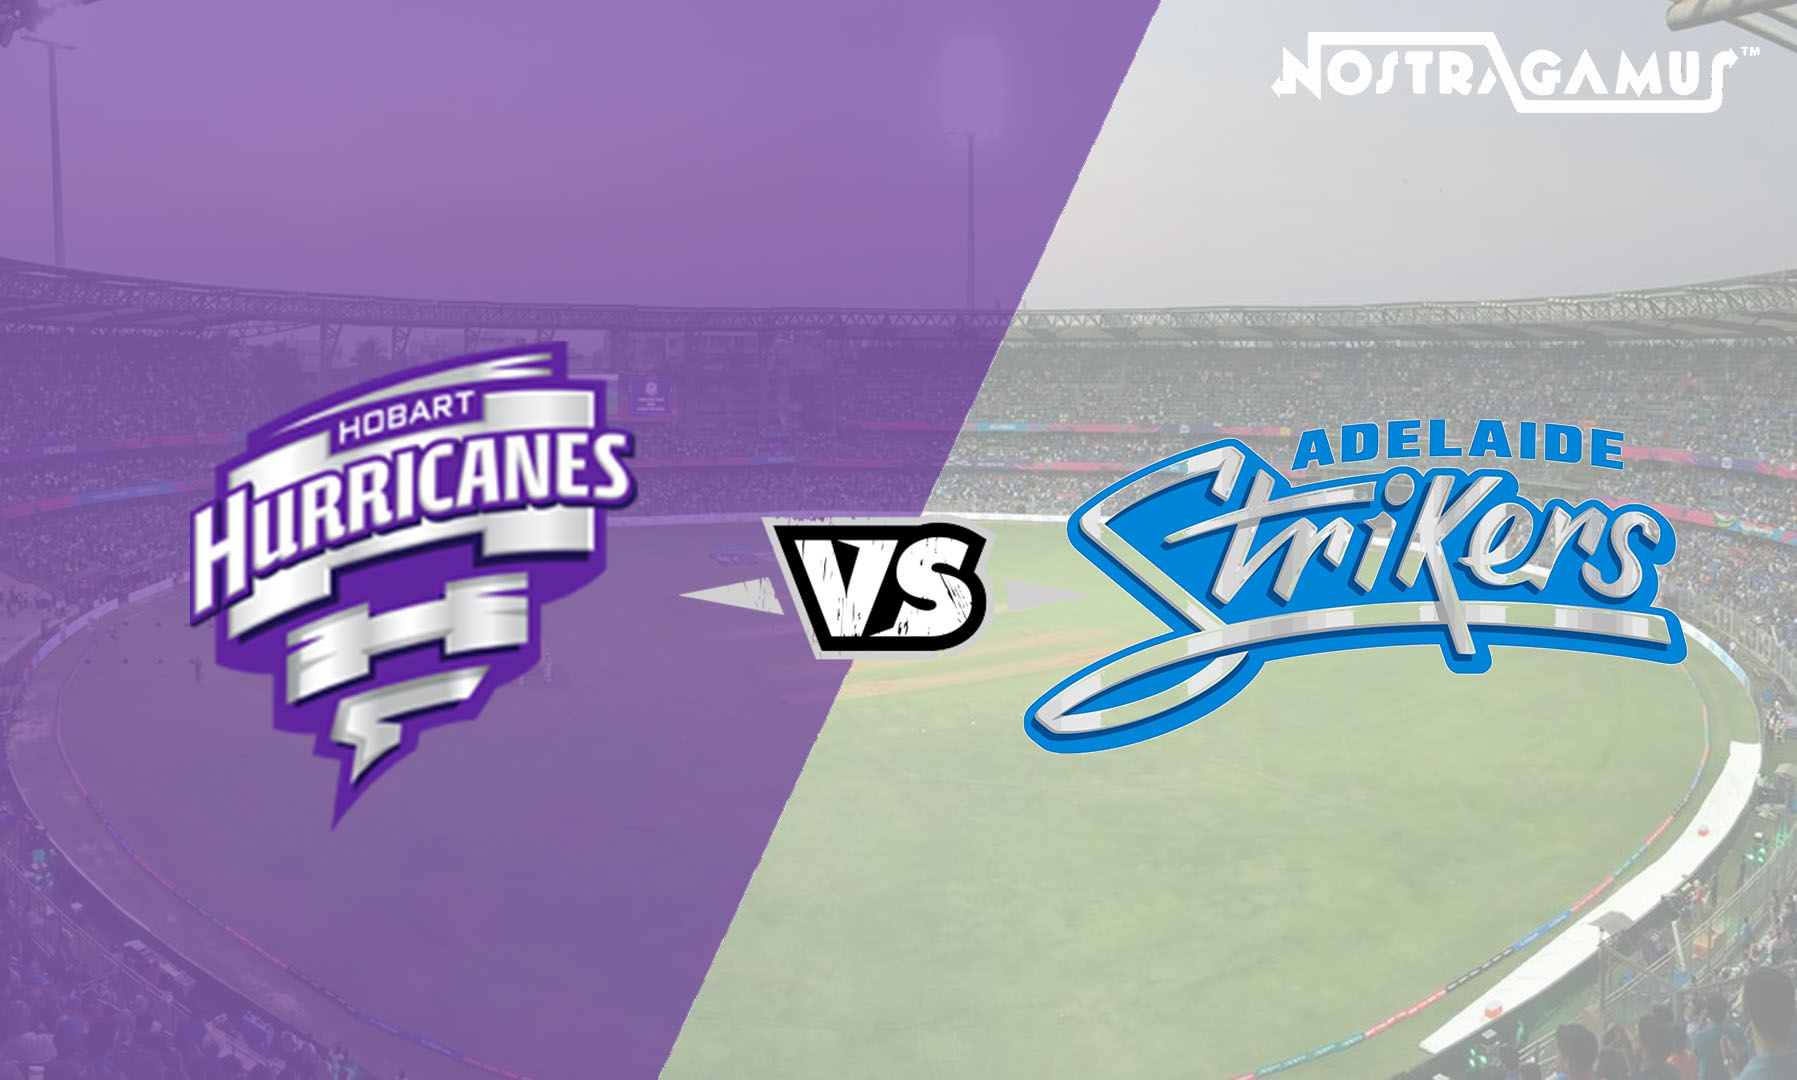 Big Bash League Predictions: Hobart Hurricanes vs Adelaide Strikers